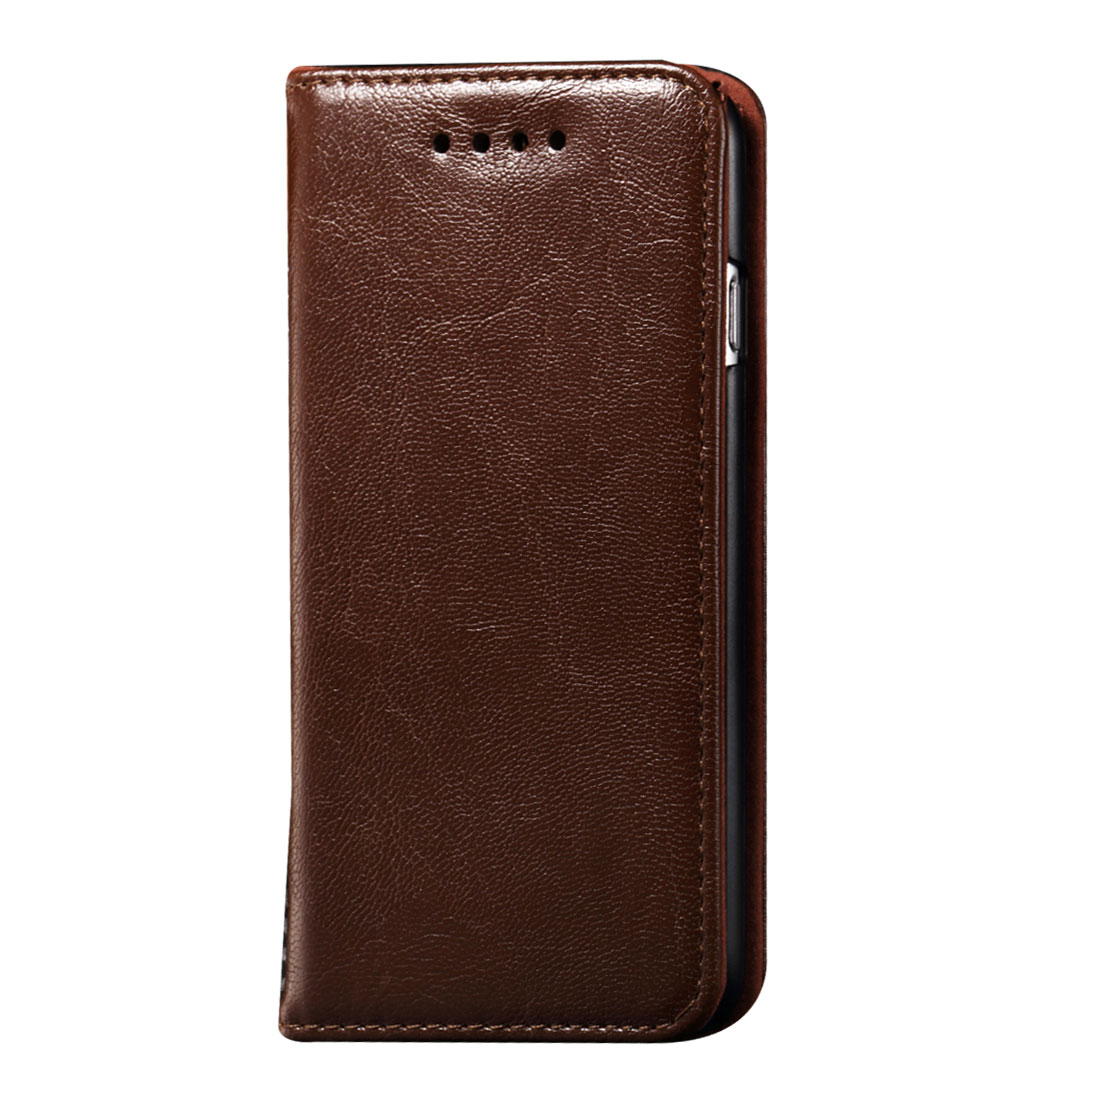 Brown PU Leather Card Wallet Phone Flip Stand Case Cover for iPhone 6 6th 4.7-inch